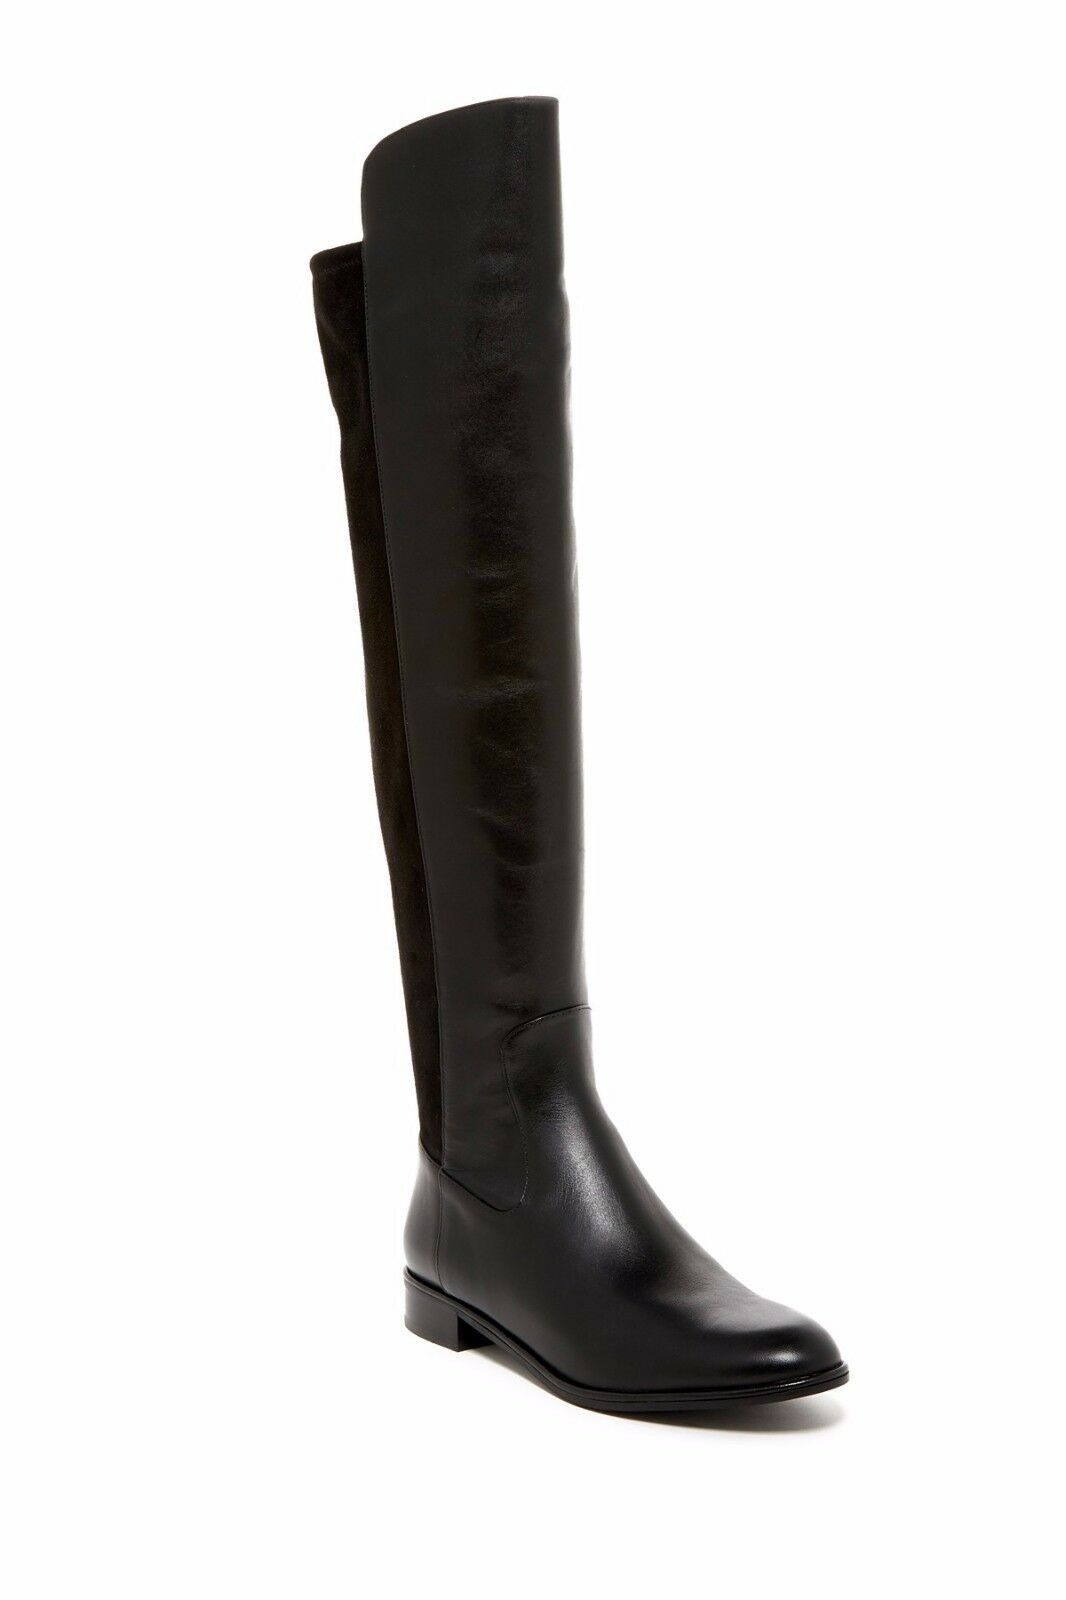 400 Via Spiga Itala Tall Tall Tall OVER THE KNEE OTK BLACK LEATHER Boot 8 M 38 (V1) 2367a8